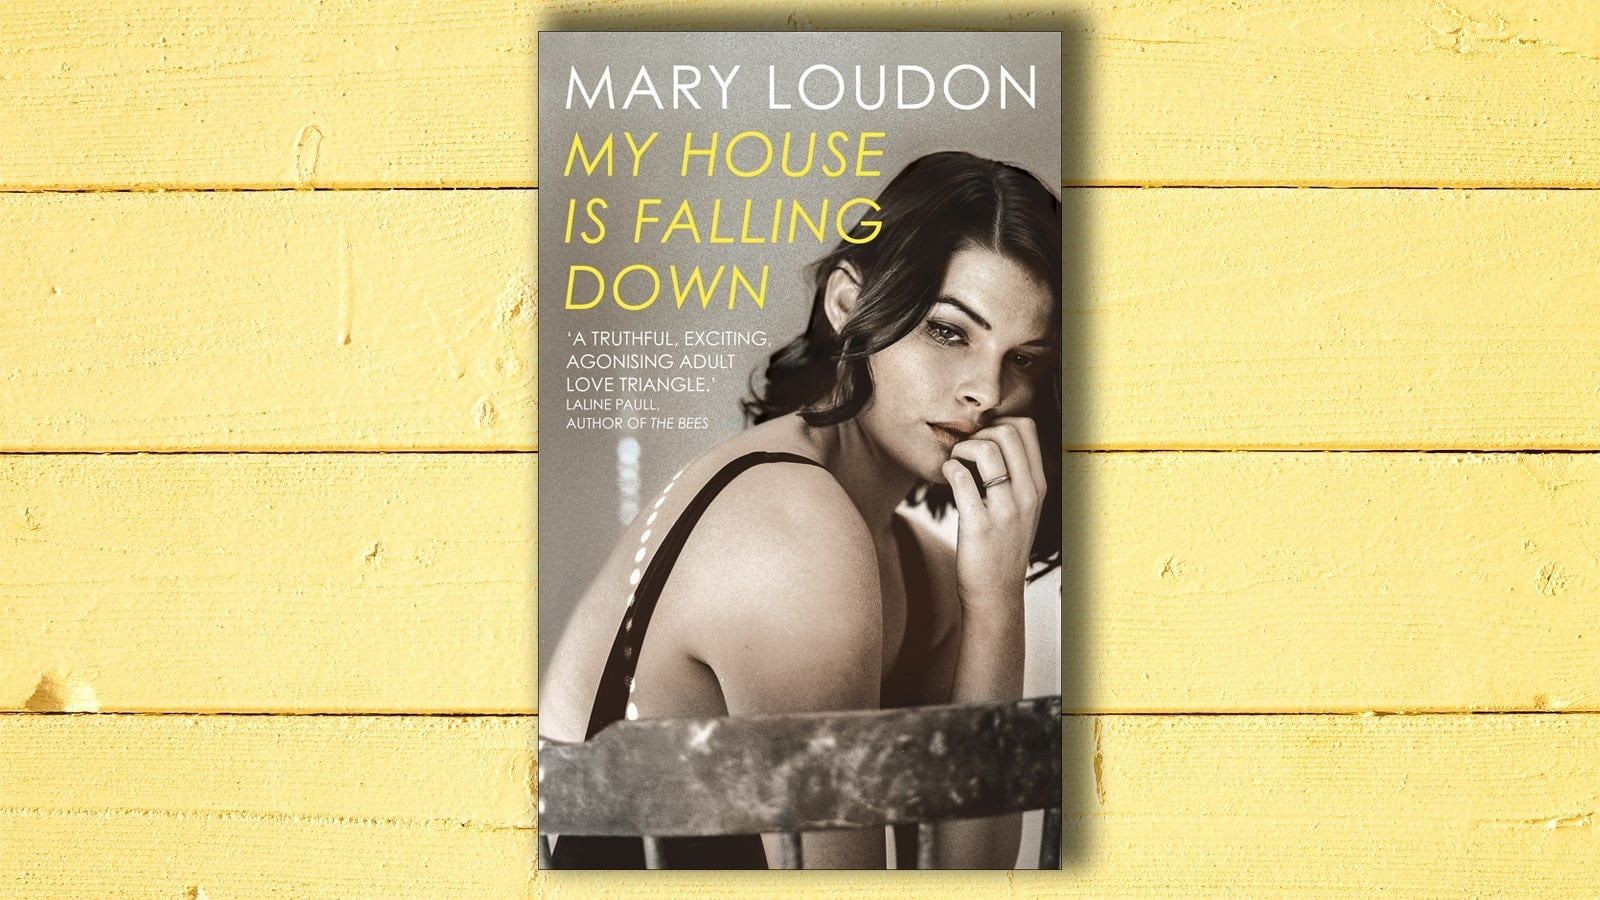 My House is Falling Down book cover on yellow background